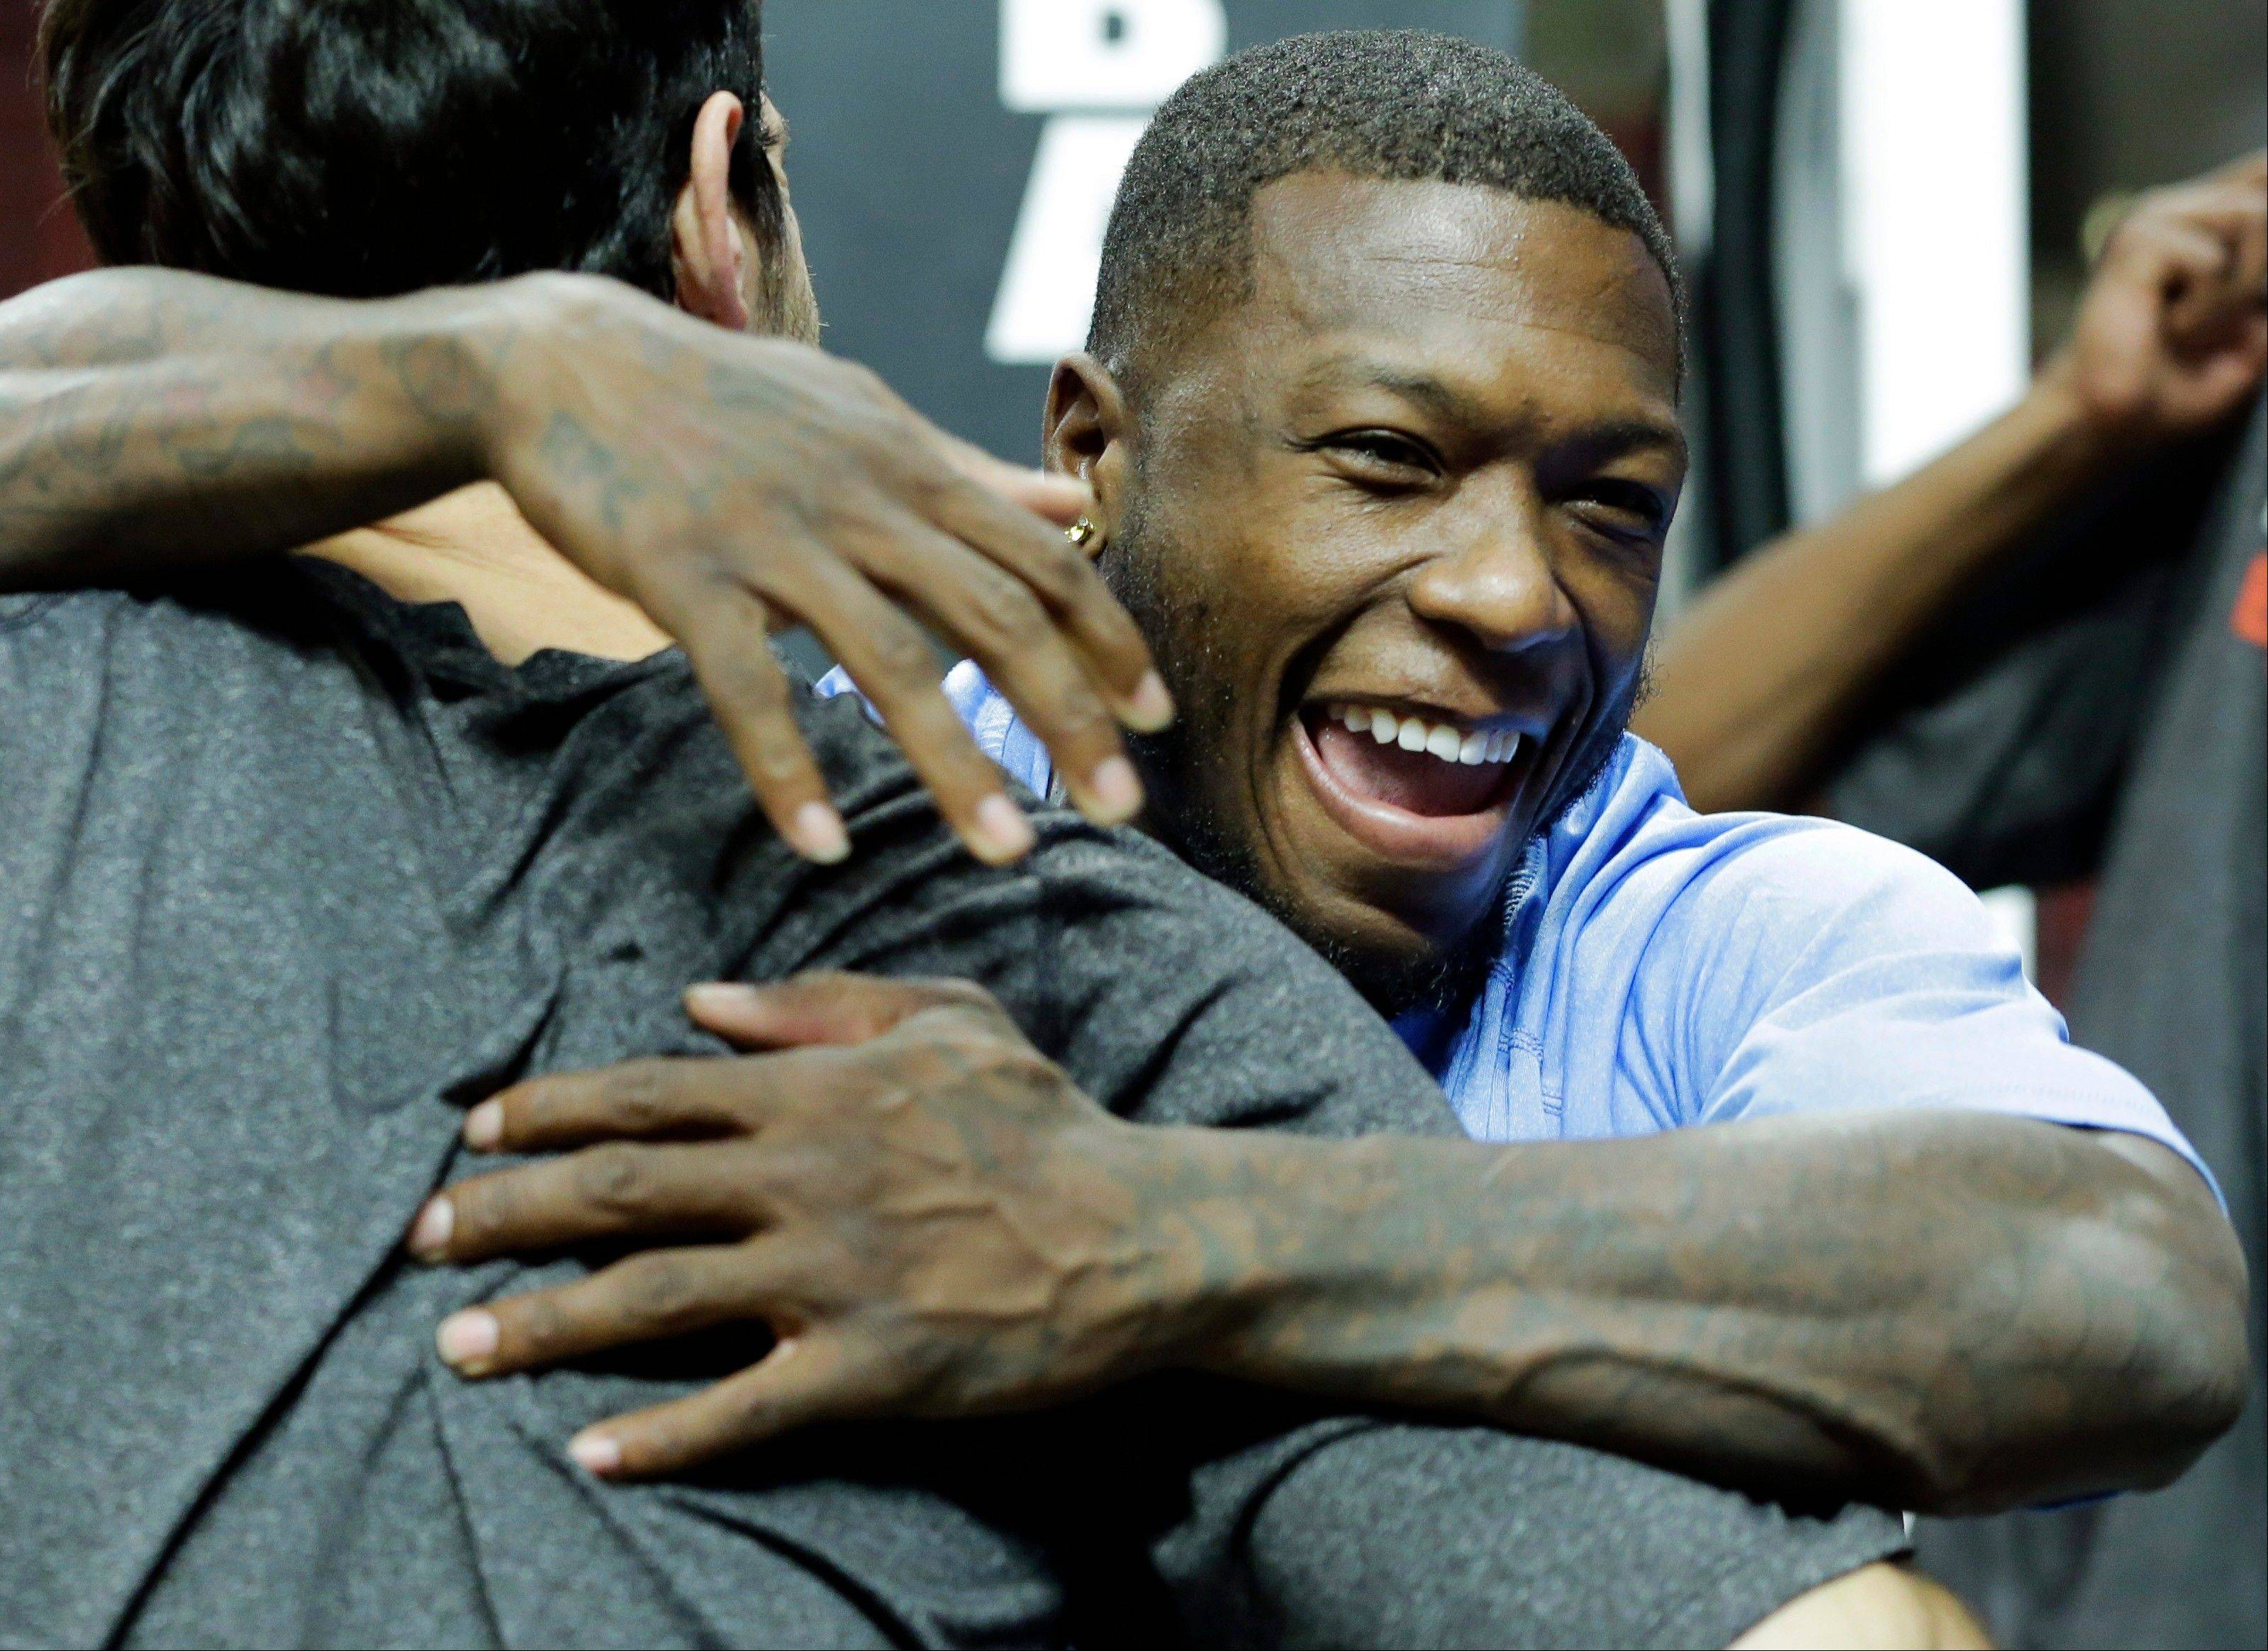 The Nuggets' Nate Robinson, right, hugs the Bulls' Kirk Hinrich on Friday. They were teammates on the Bulls last season.